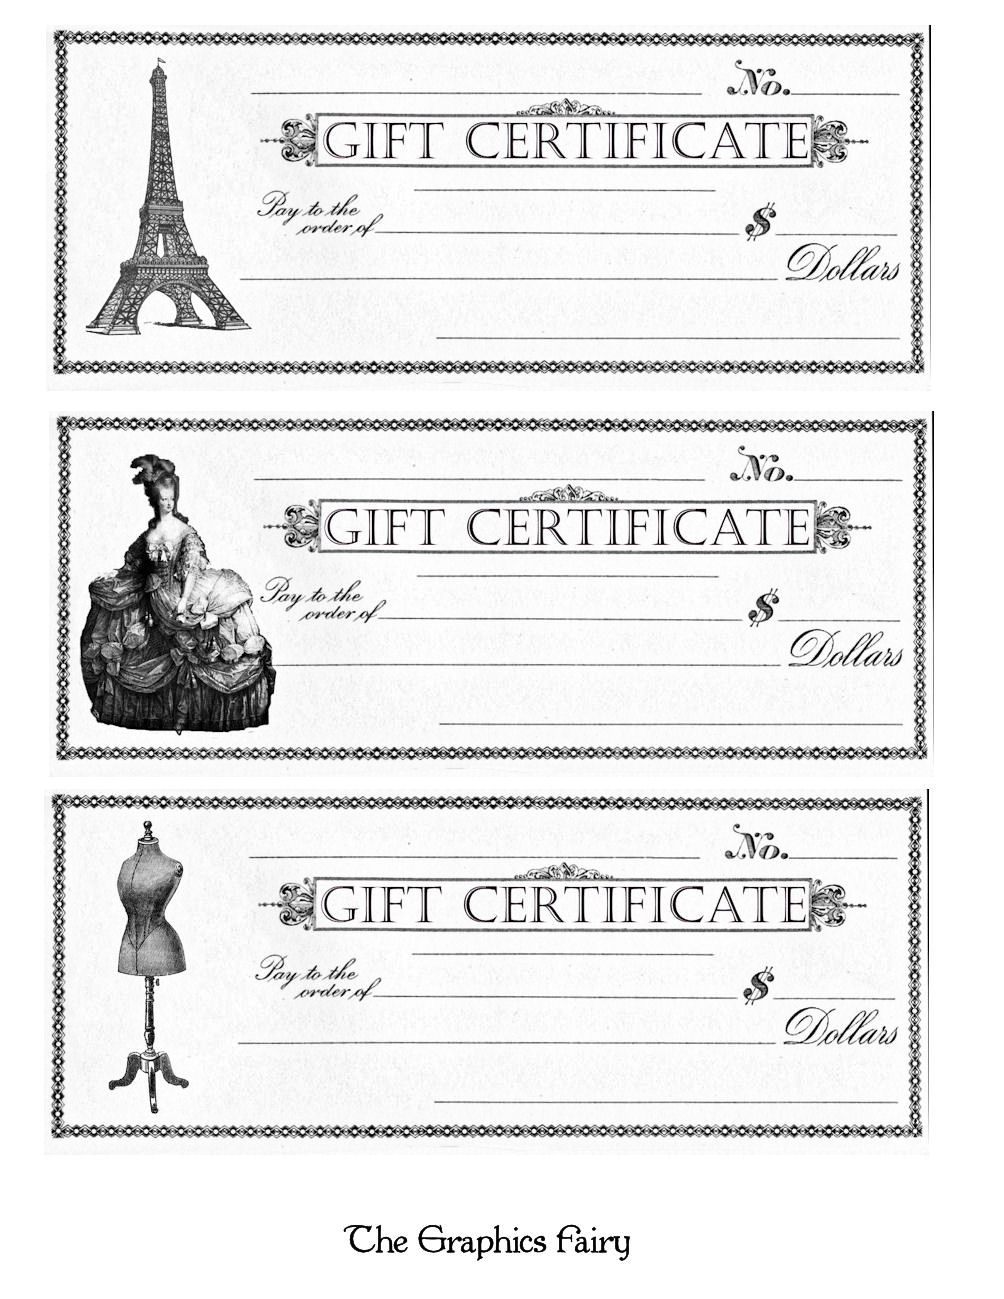 Free Printable - Gift Certificates - The Graphics Fairy - Free Printable Gift Certificates